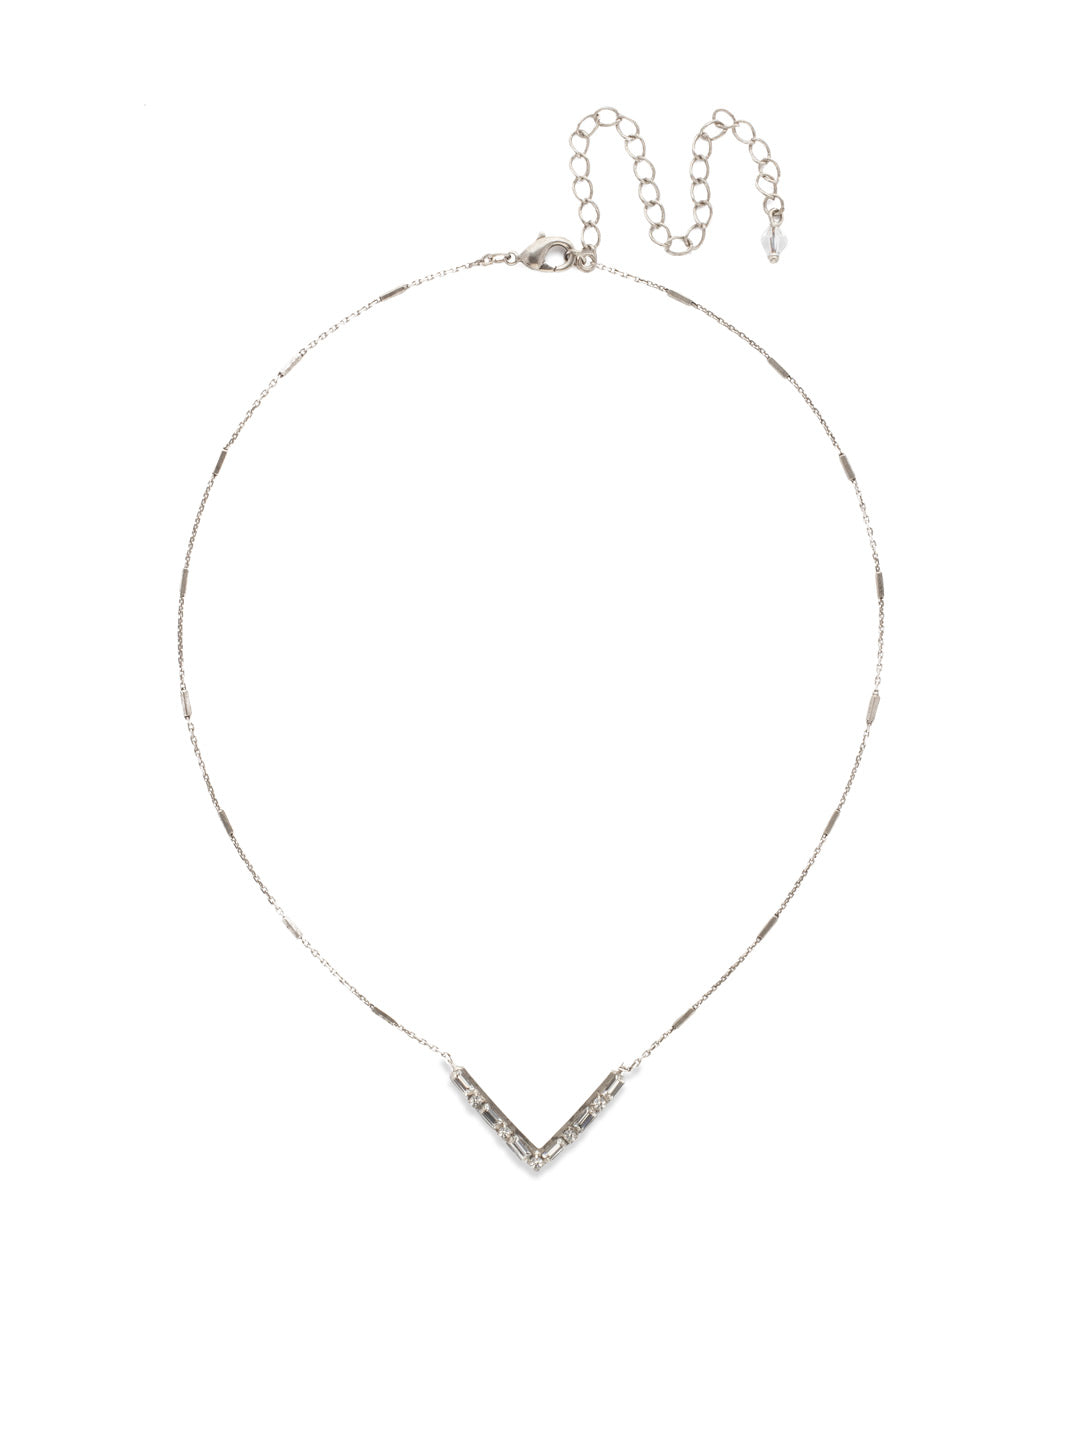 Chevron Pendant Necklace - NDM9ASCRY